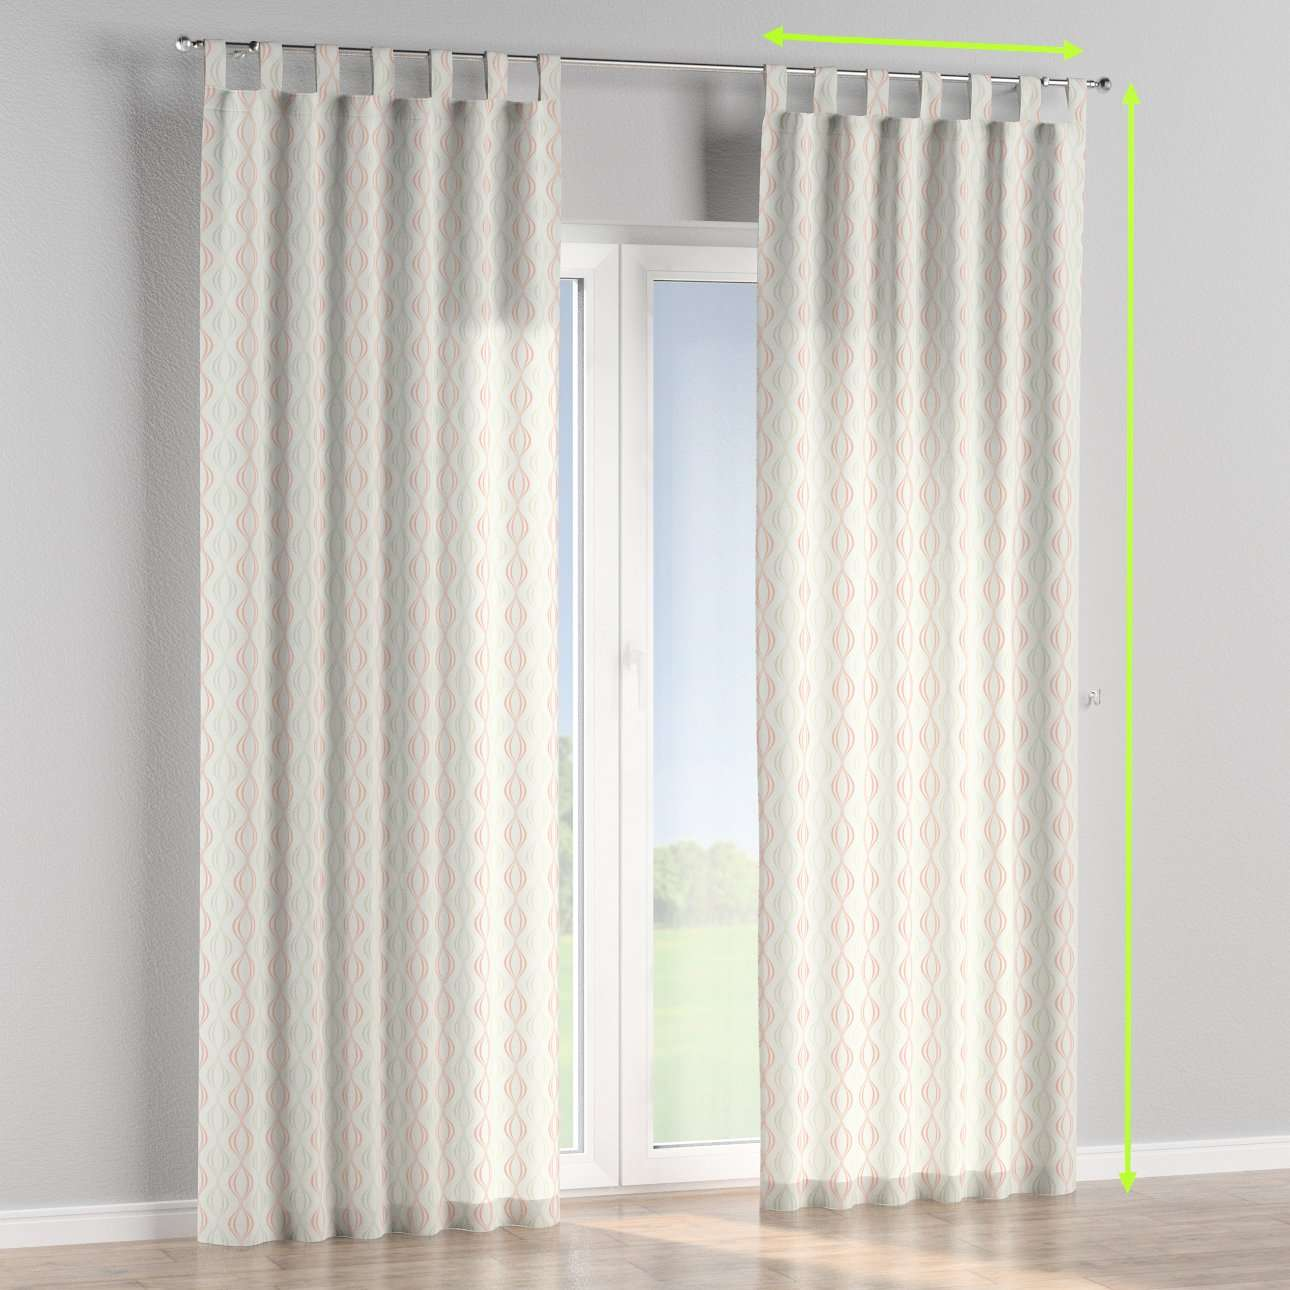 Tab top lined curtains in collection Geometric, fabric: 141-49